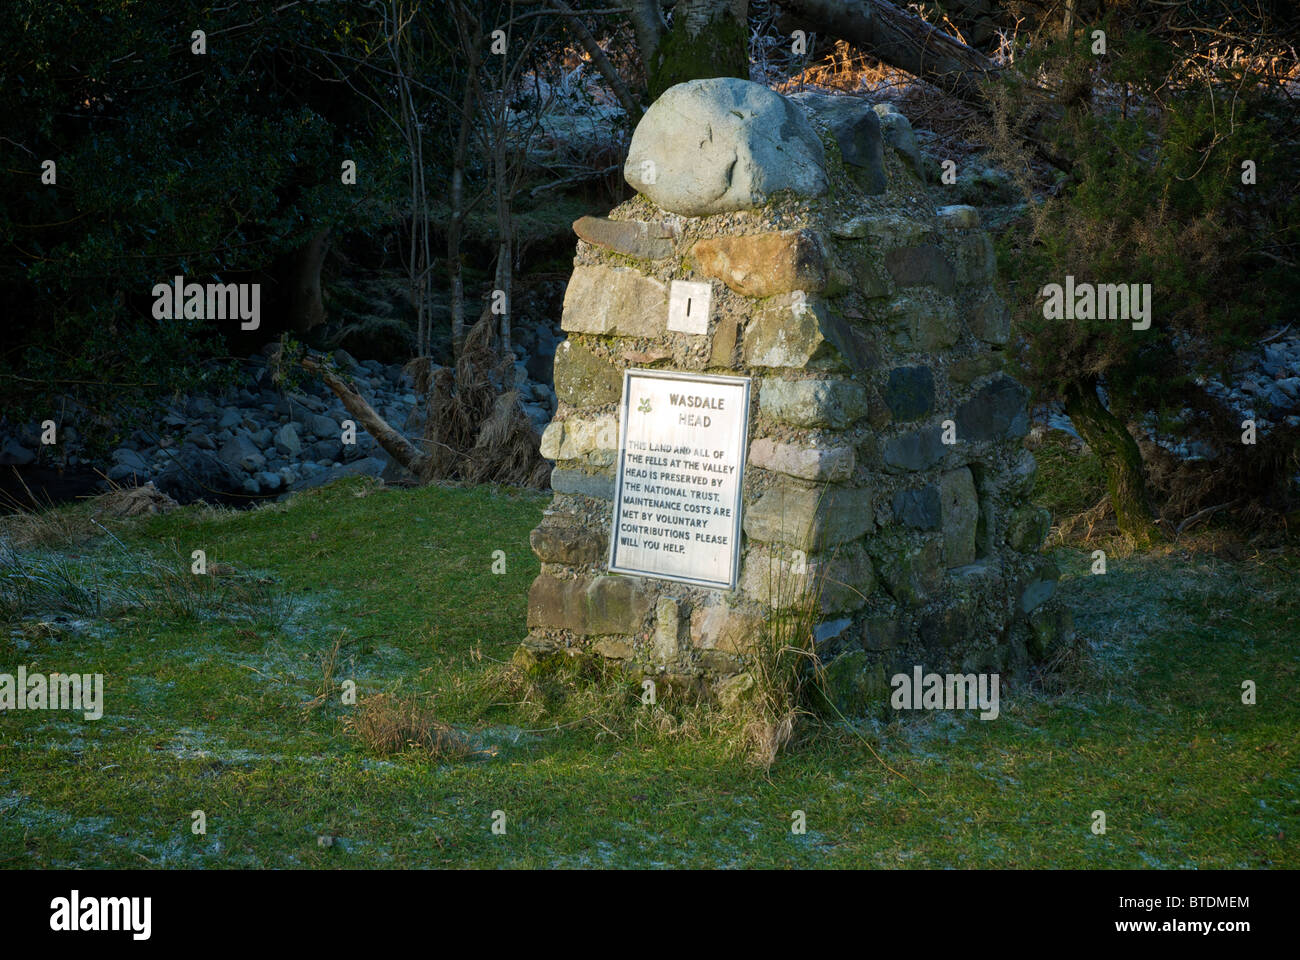 National Trust donation box at Wasdale Head, Lake District National Park, Cumbria, England UK - Stock Image